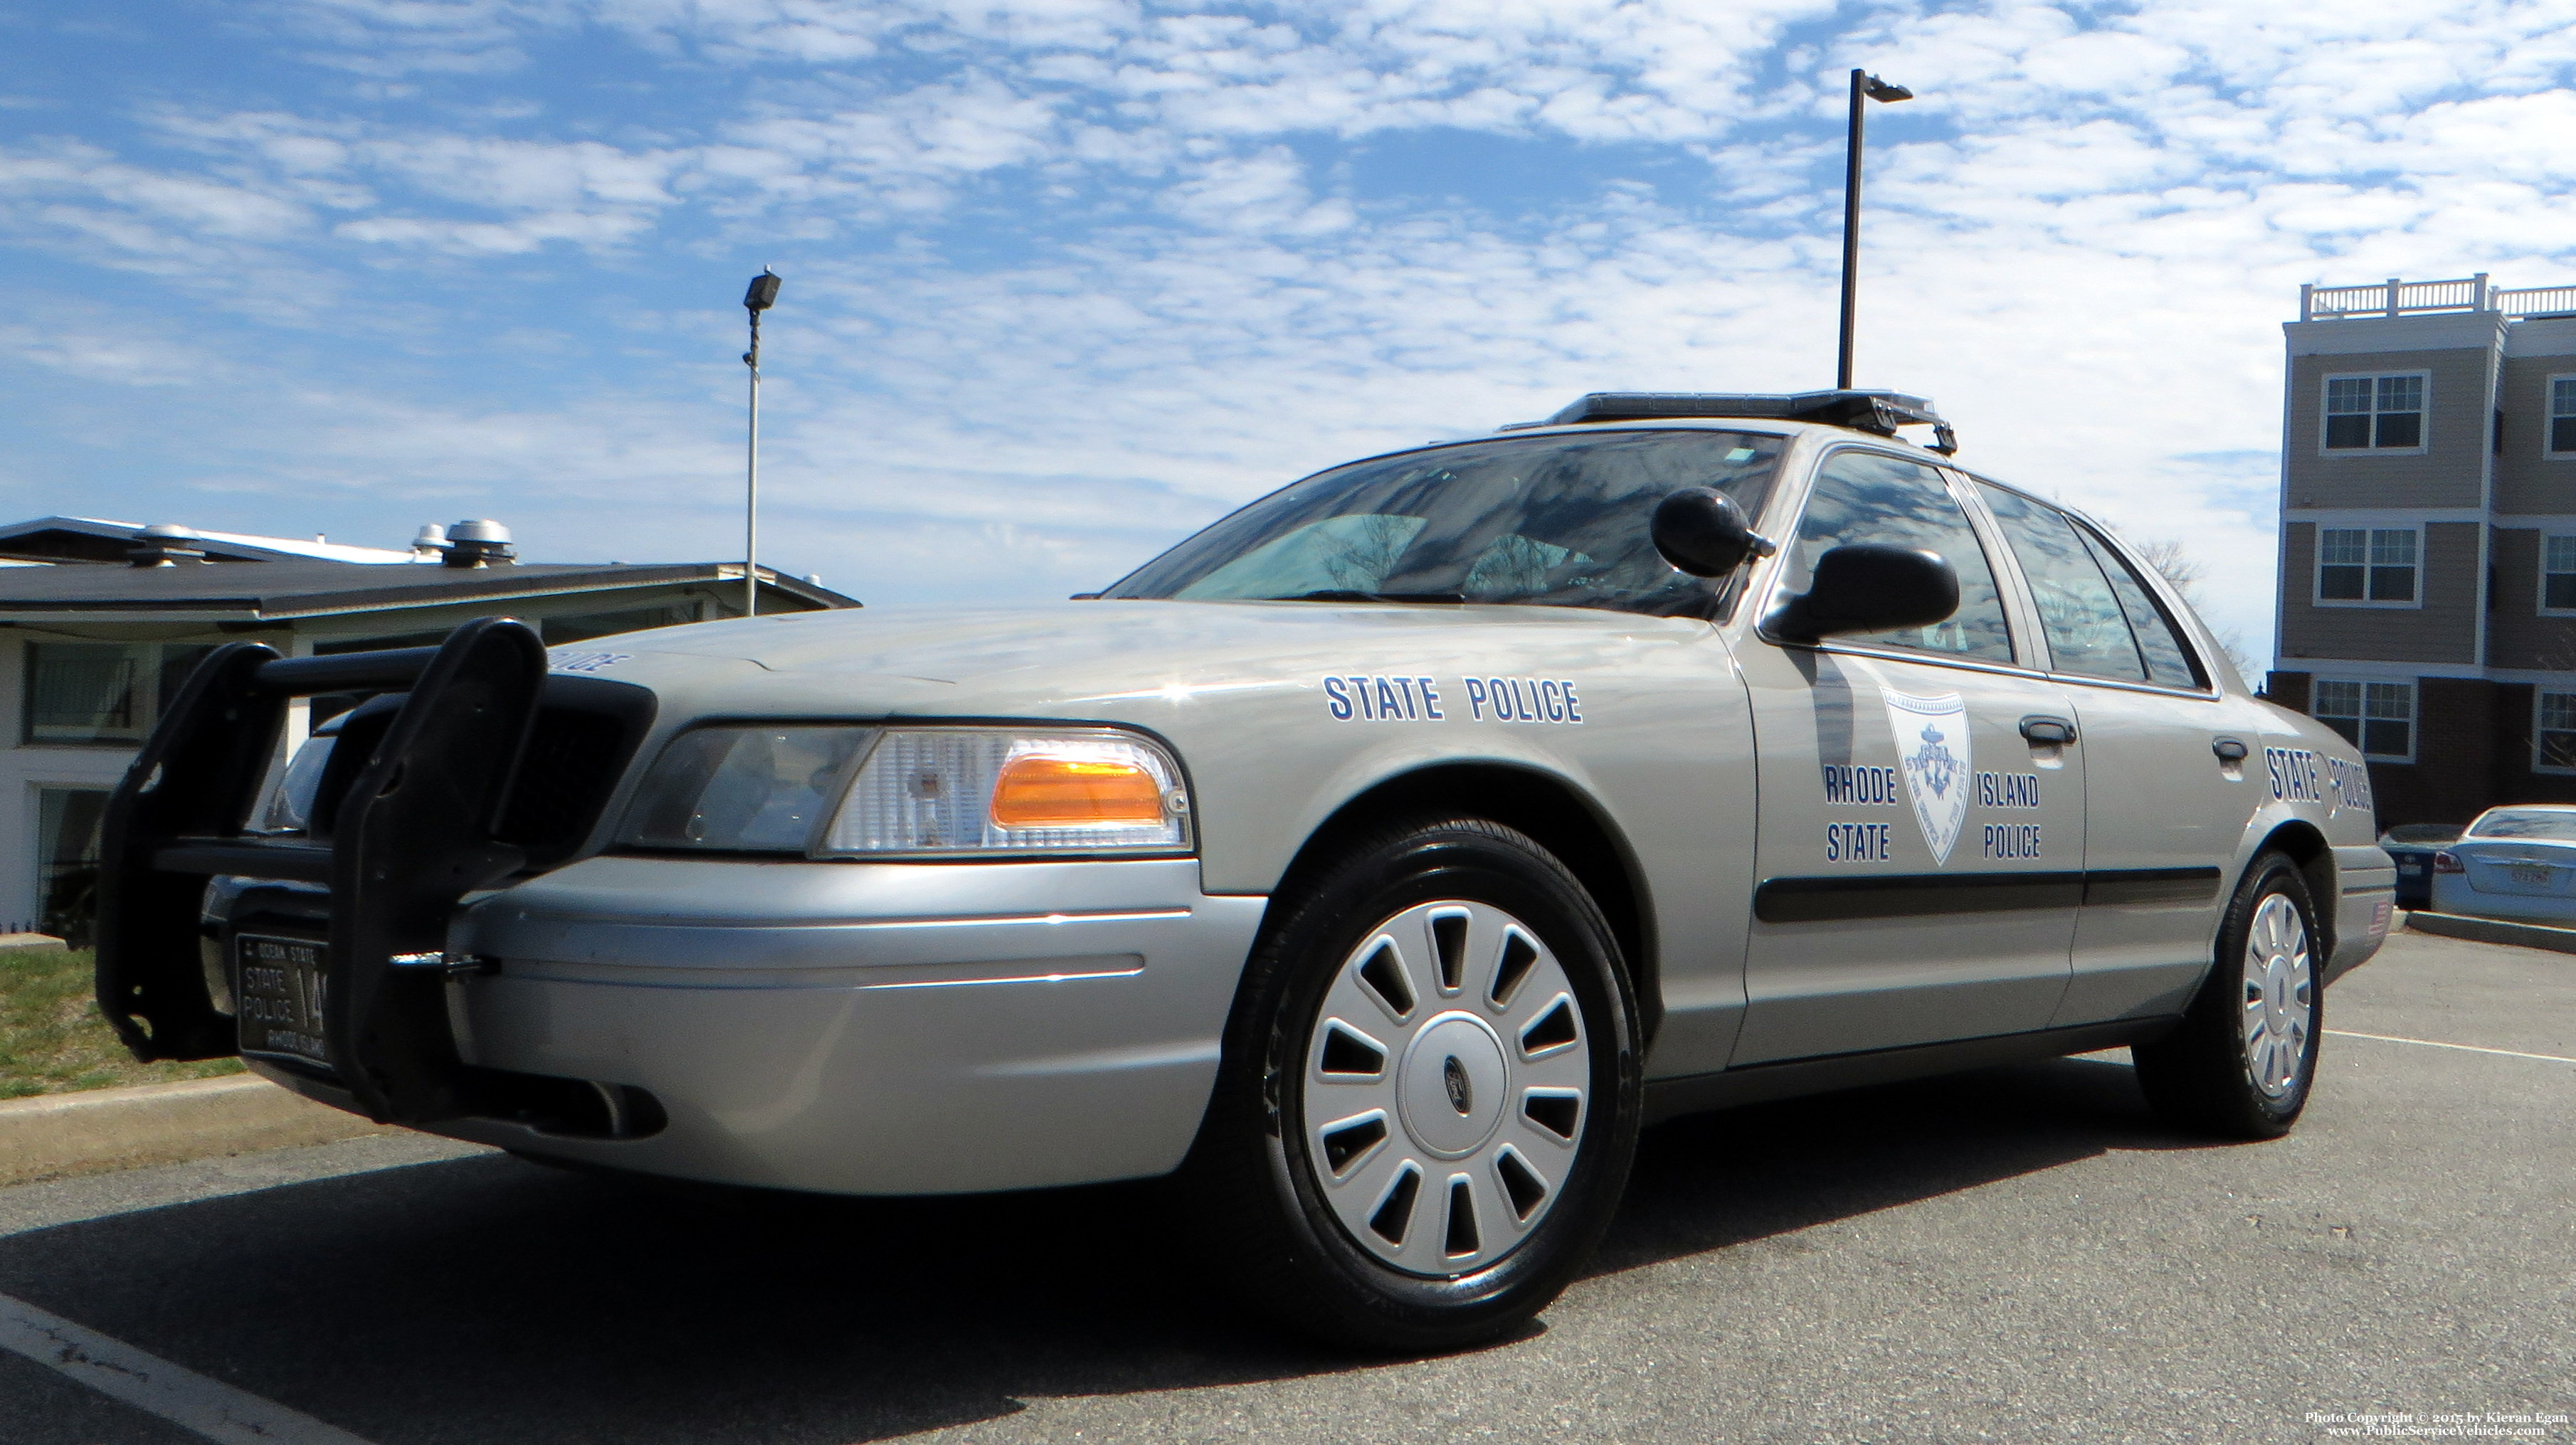 A photo  of Rhode Island State Police             Cruiser 140, a 2006-2008 Ford Crown Victoria Police Interceptor             taken by Kieran Egan